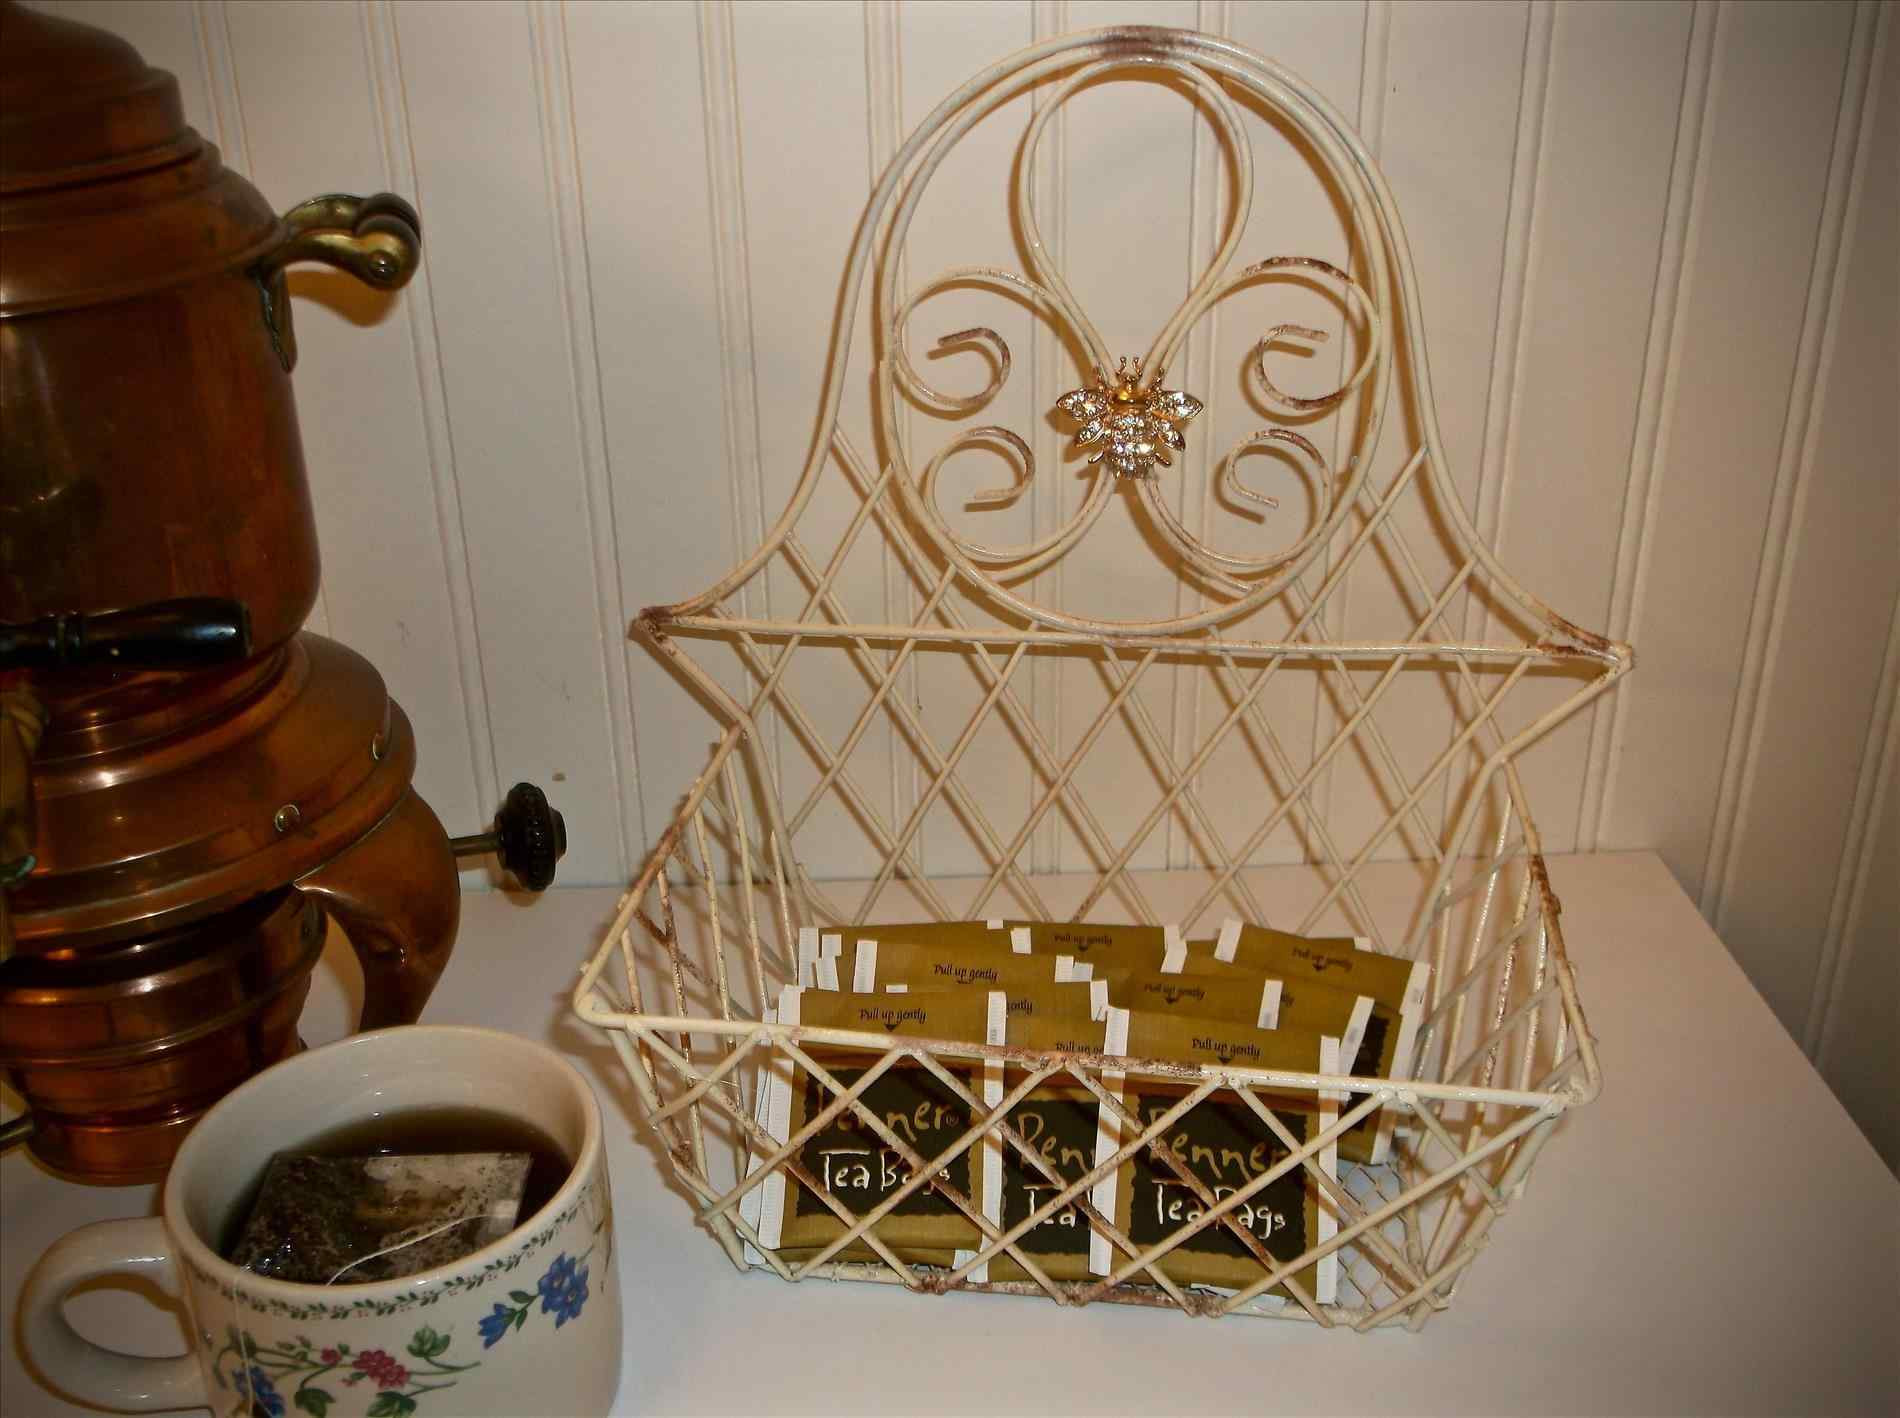 Best ideas about Bee Kitchen Decor . Save or Pin Bumble Bee Kitchen Decor Now.